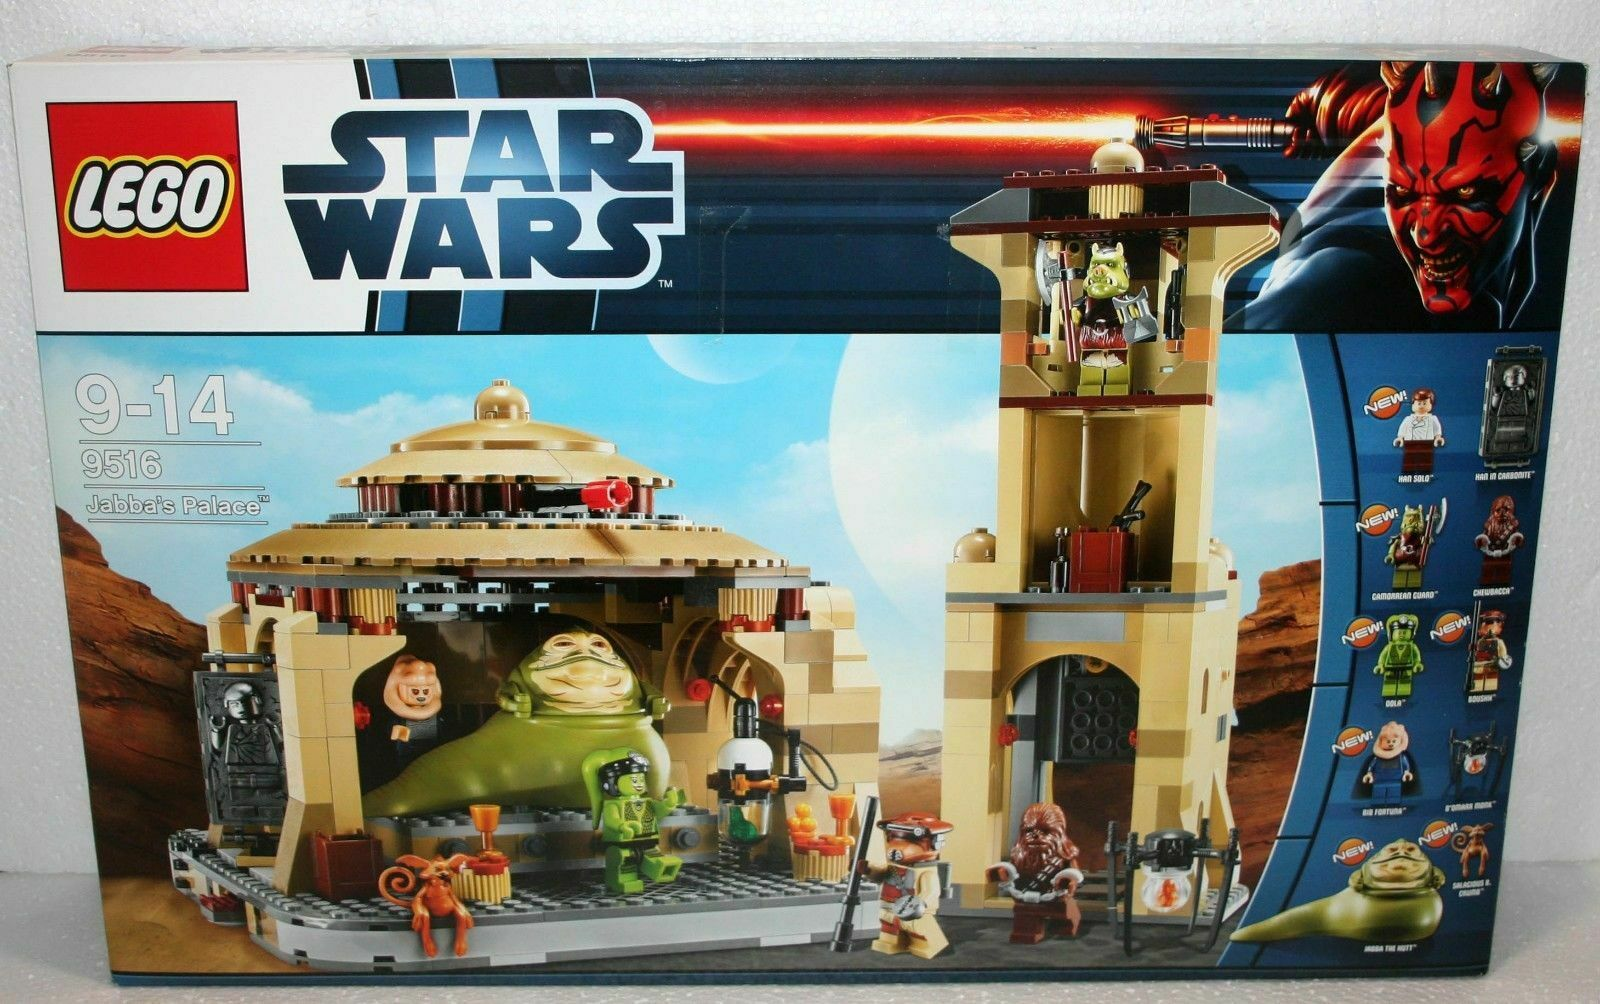 PAS DE PAYPAL  LEGO STAR WARS JABBA'S PALACE NEUF NEUF NEUF NEW SEALED  NO PAYPAL 28436d